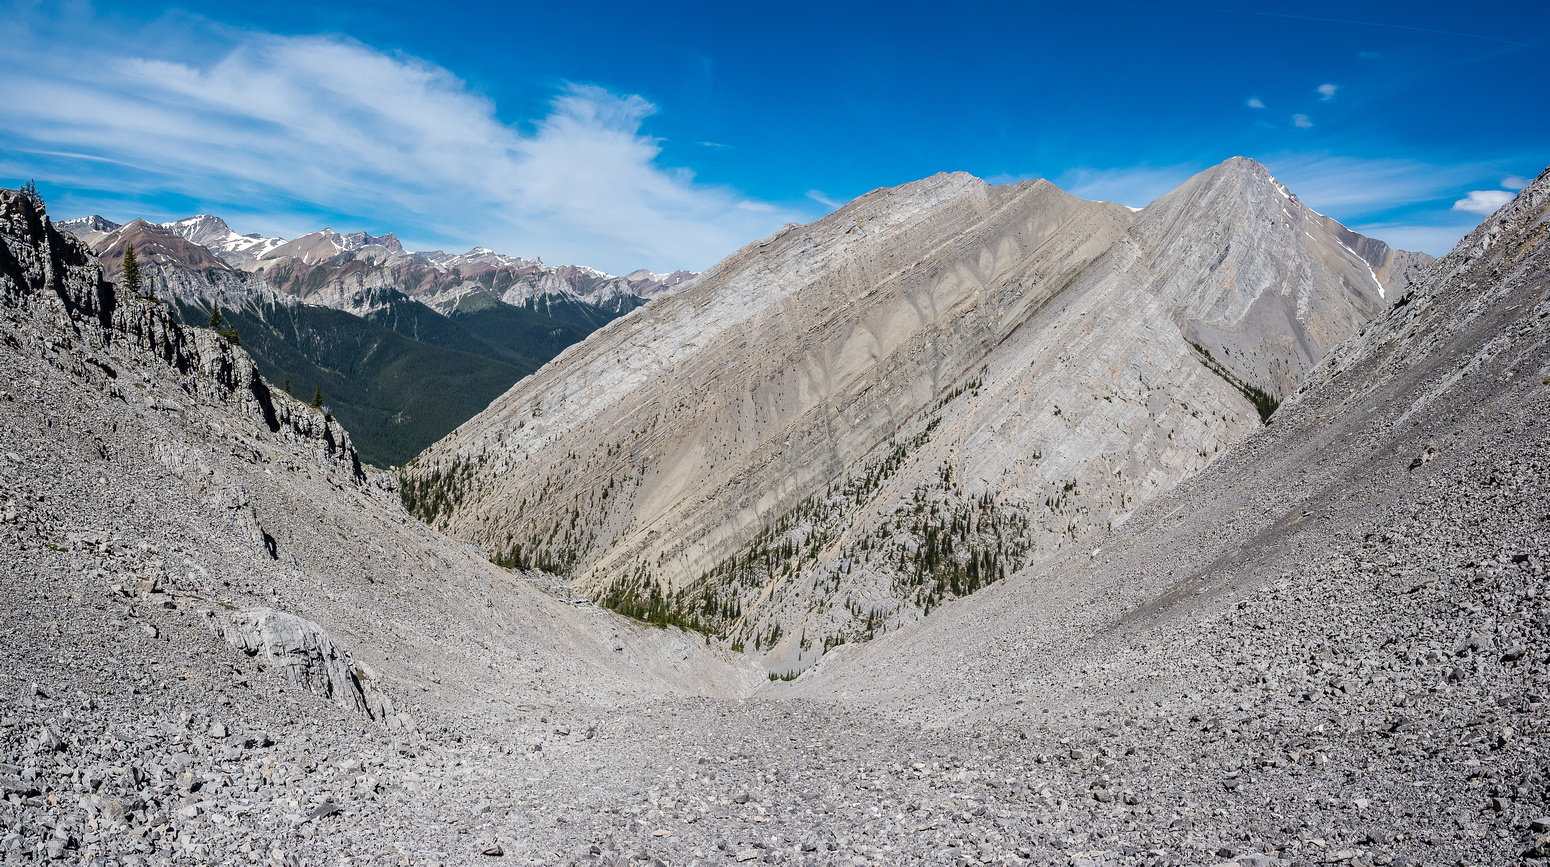 Higher up the scree gully, looking back towards Bright Star - the summit not visible here.